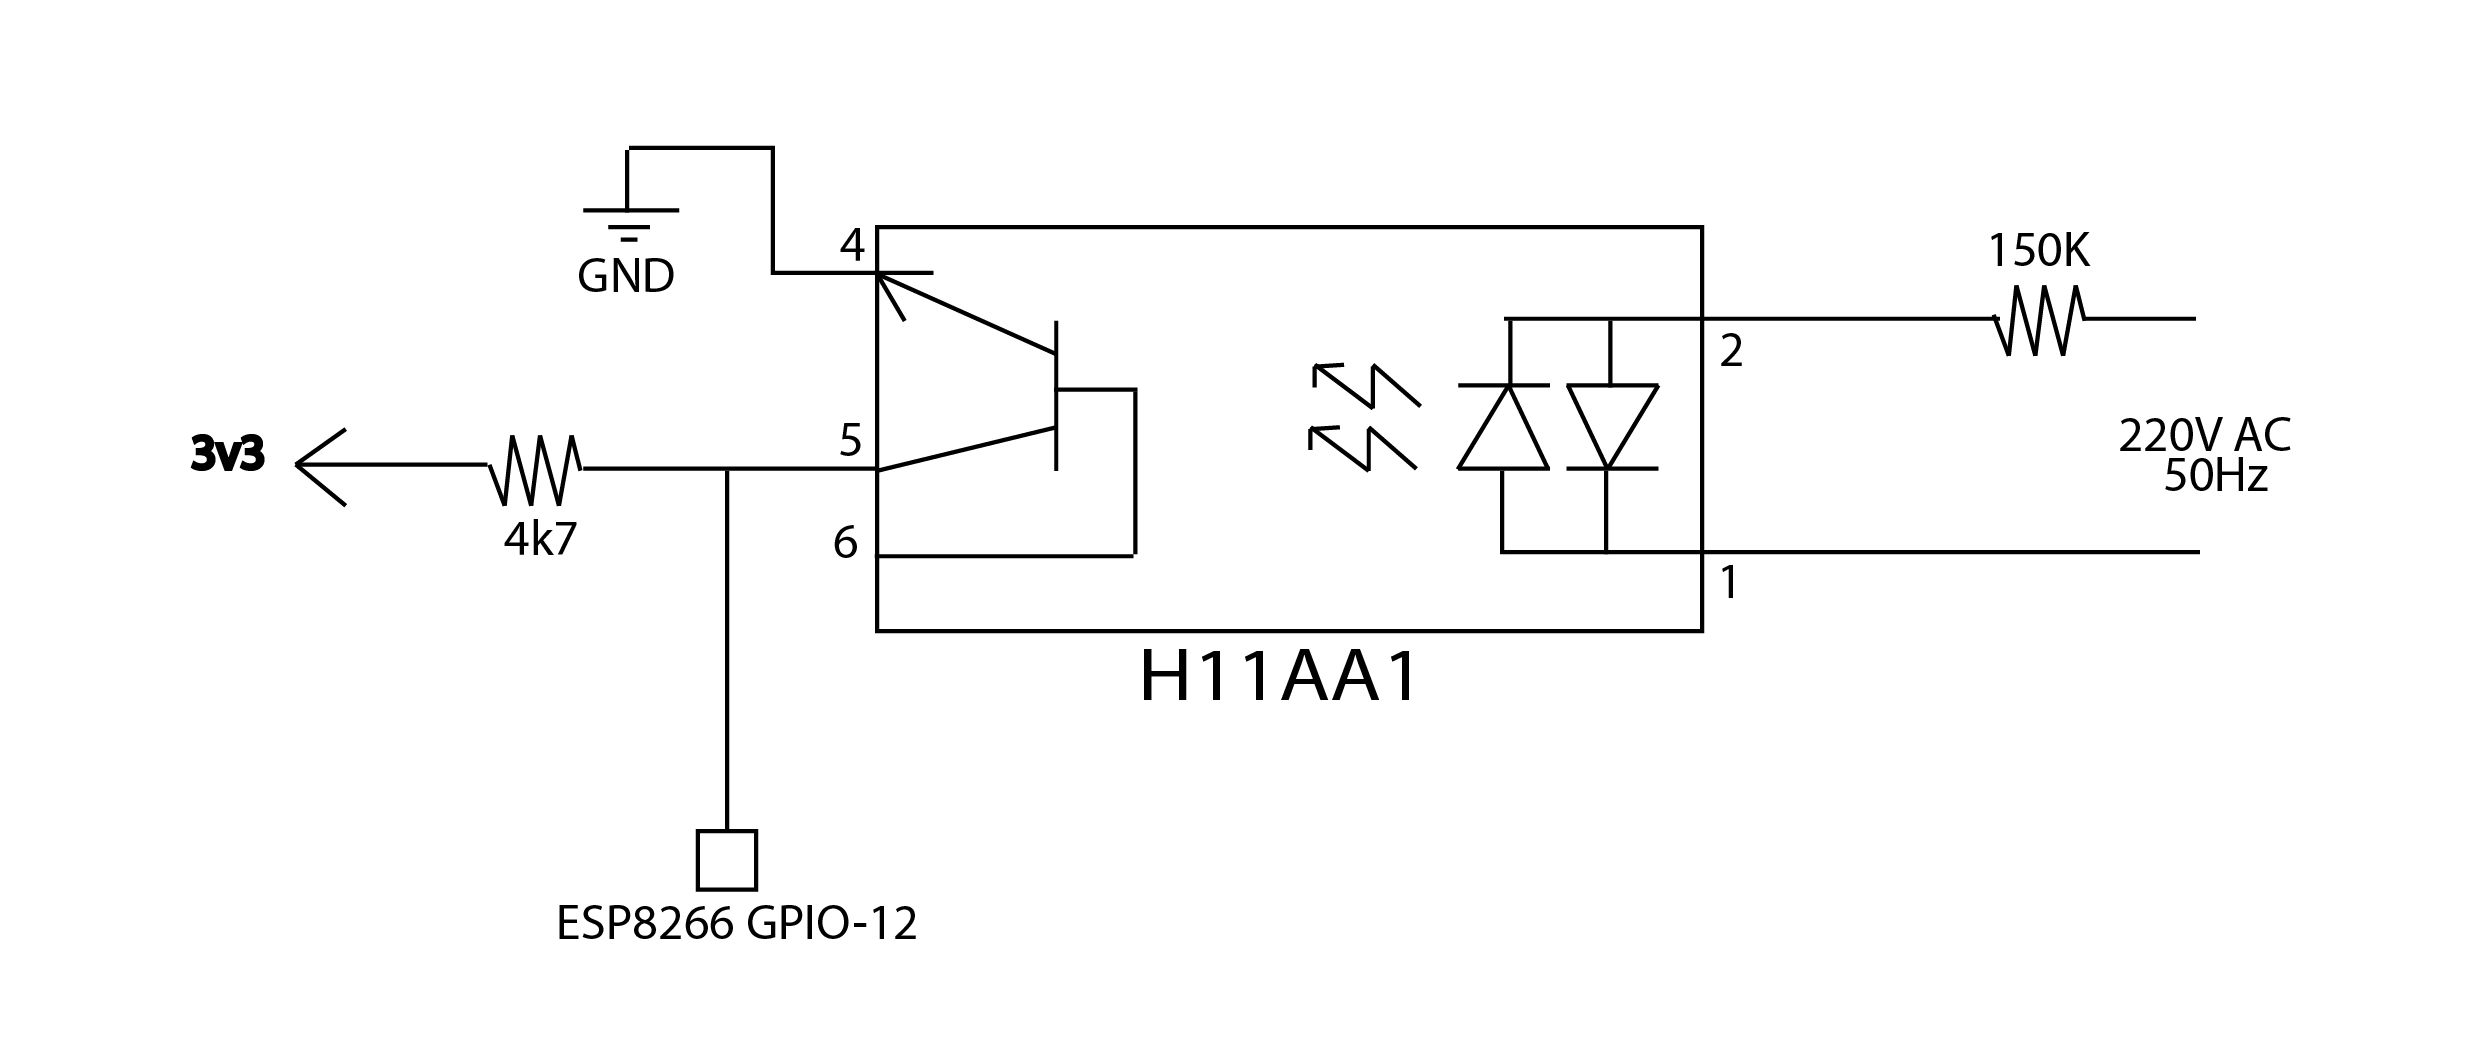 triac - zero-cross detector problem - electrical engineering stack with  regard to overflow detection circuit